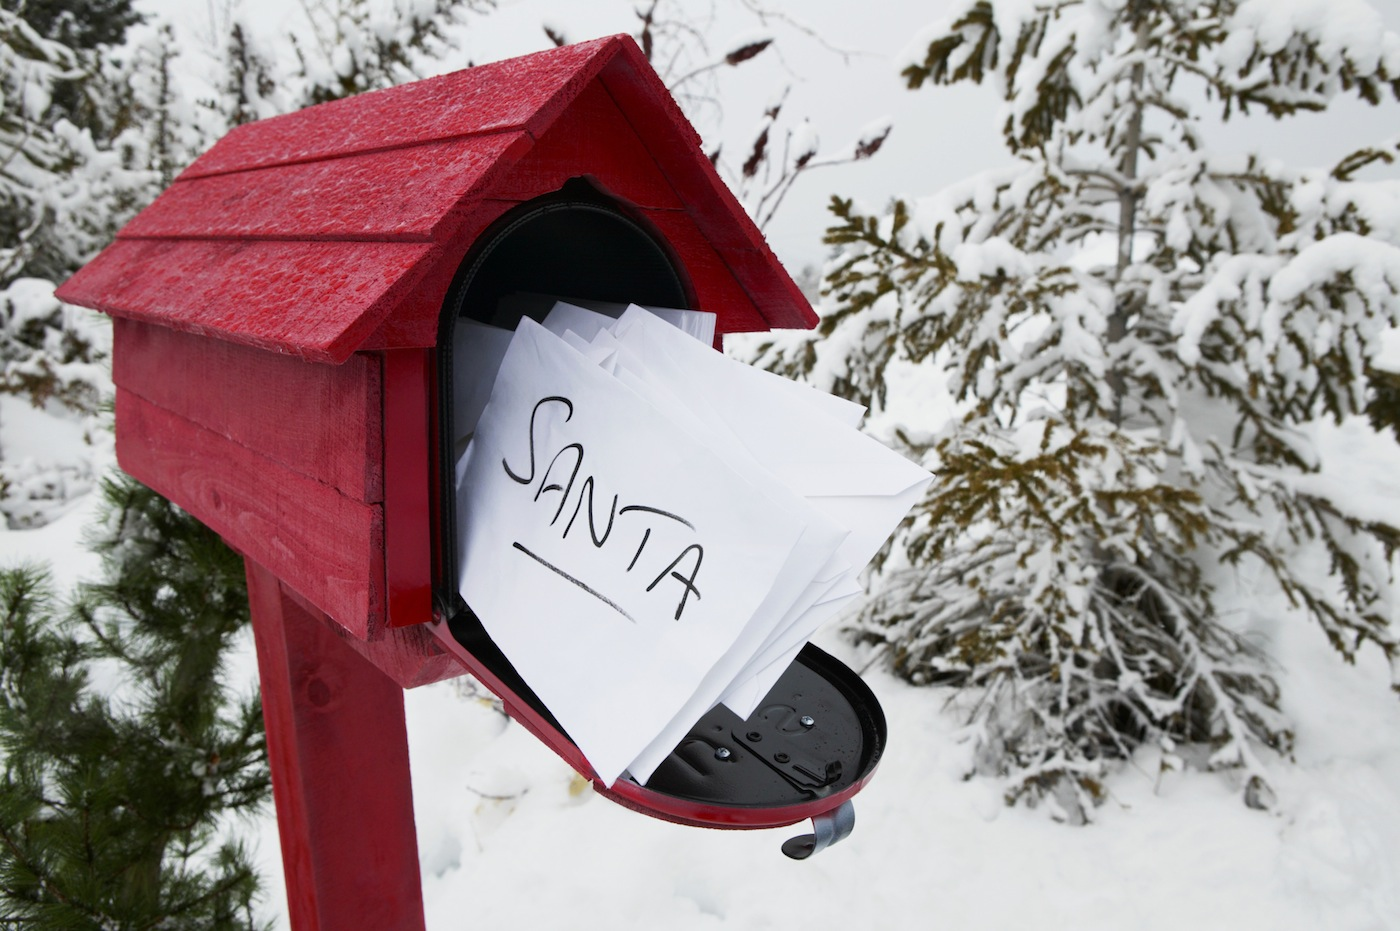 Former Klarna exec bags $2m in funding for new 'digital mailbox' startup Kivra